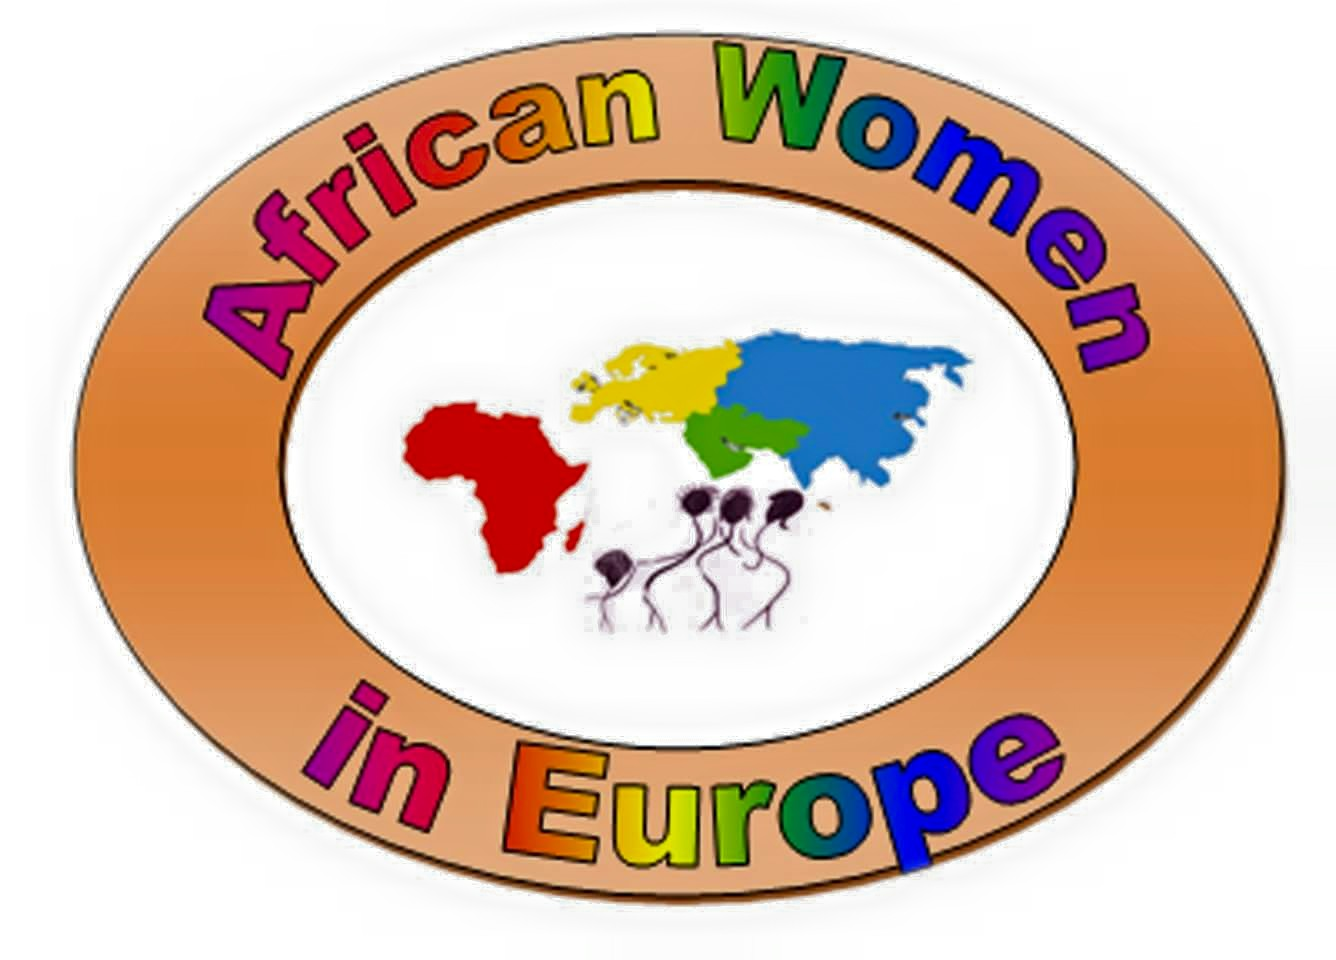 2015 Winner of African Women in Europe